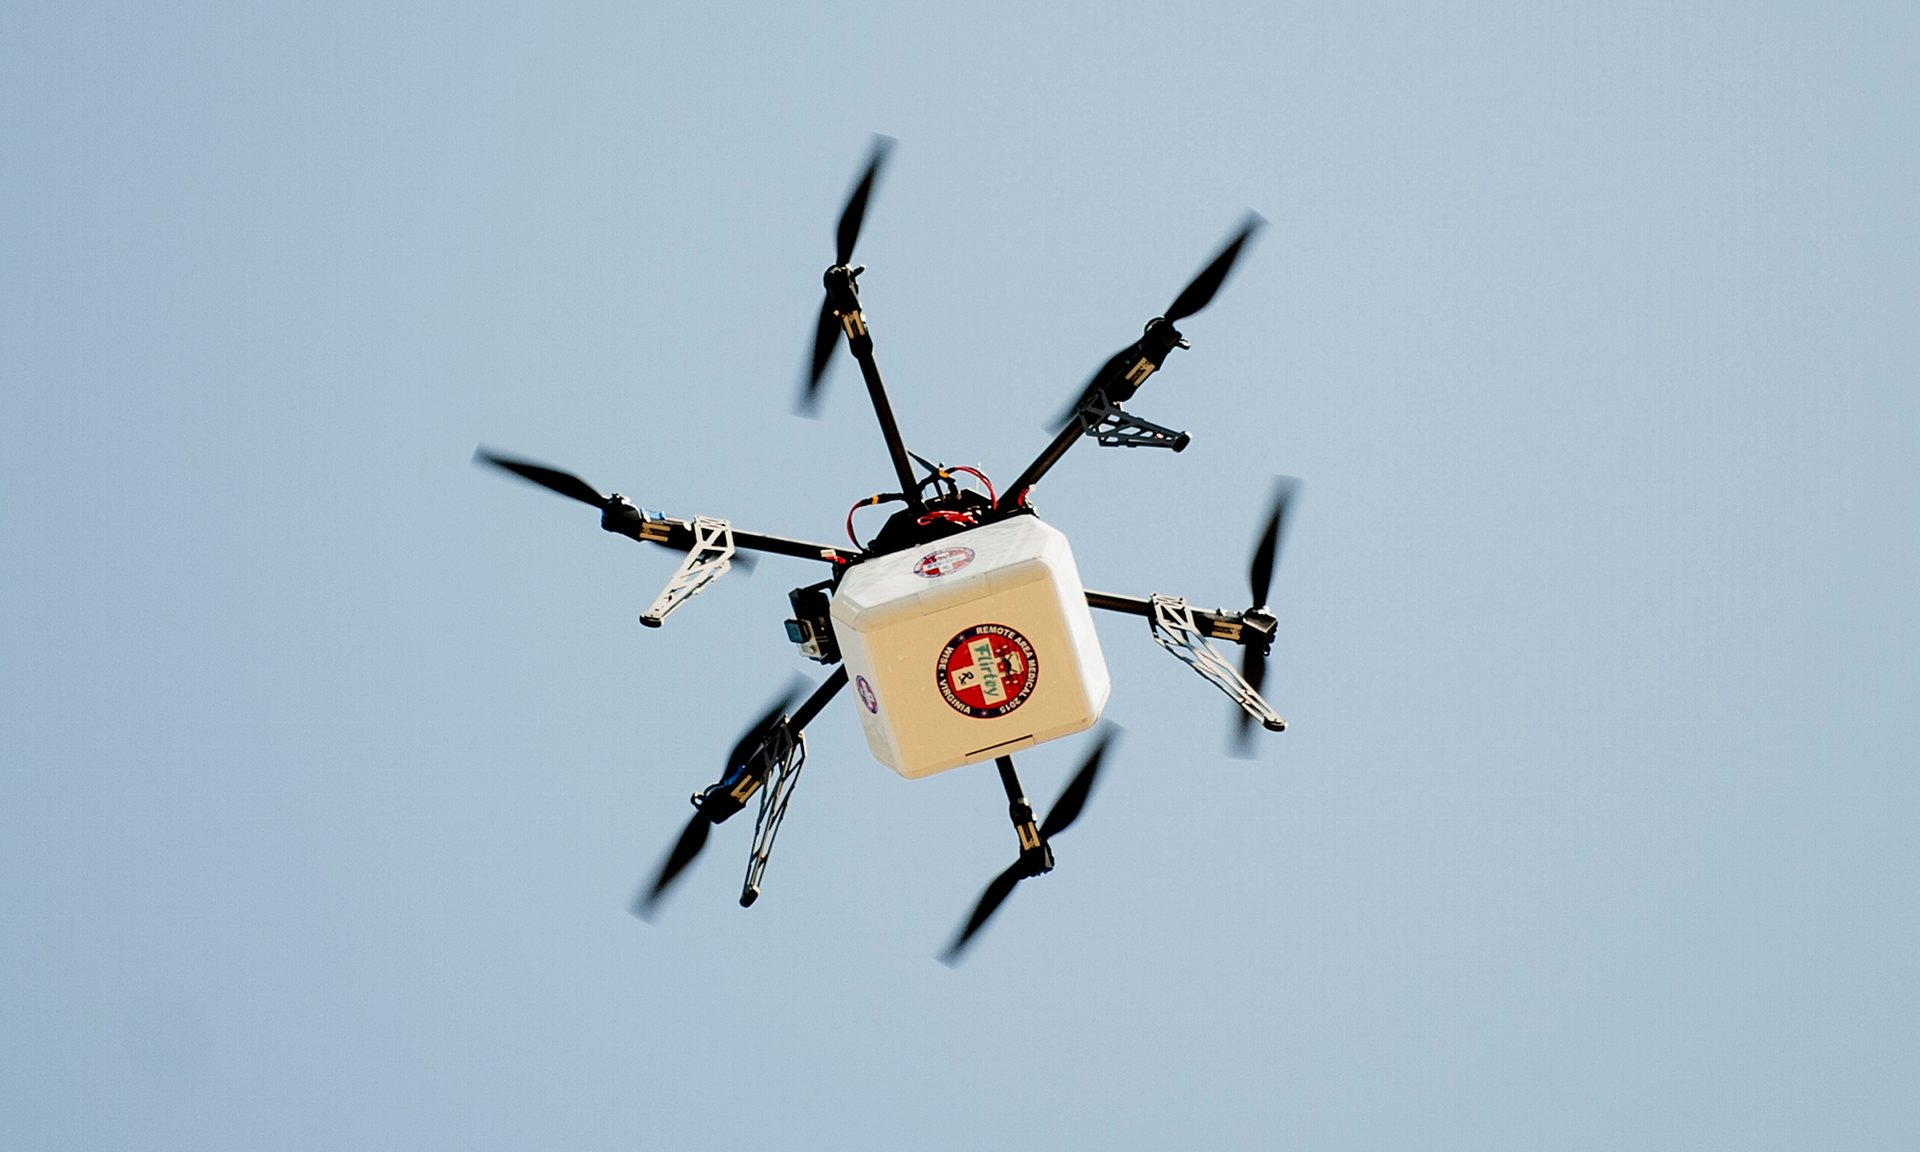 A drone sets off to deliver medicine. Photograph: Pete Marovich/Bloomberg/Getty